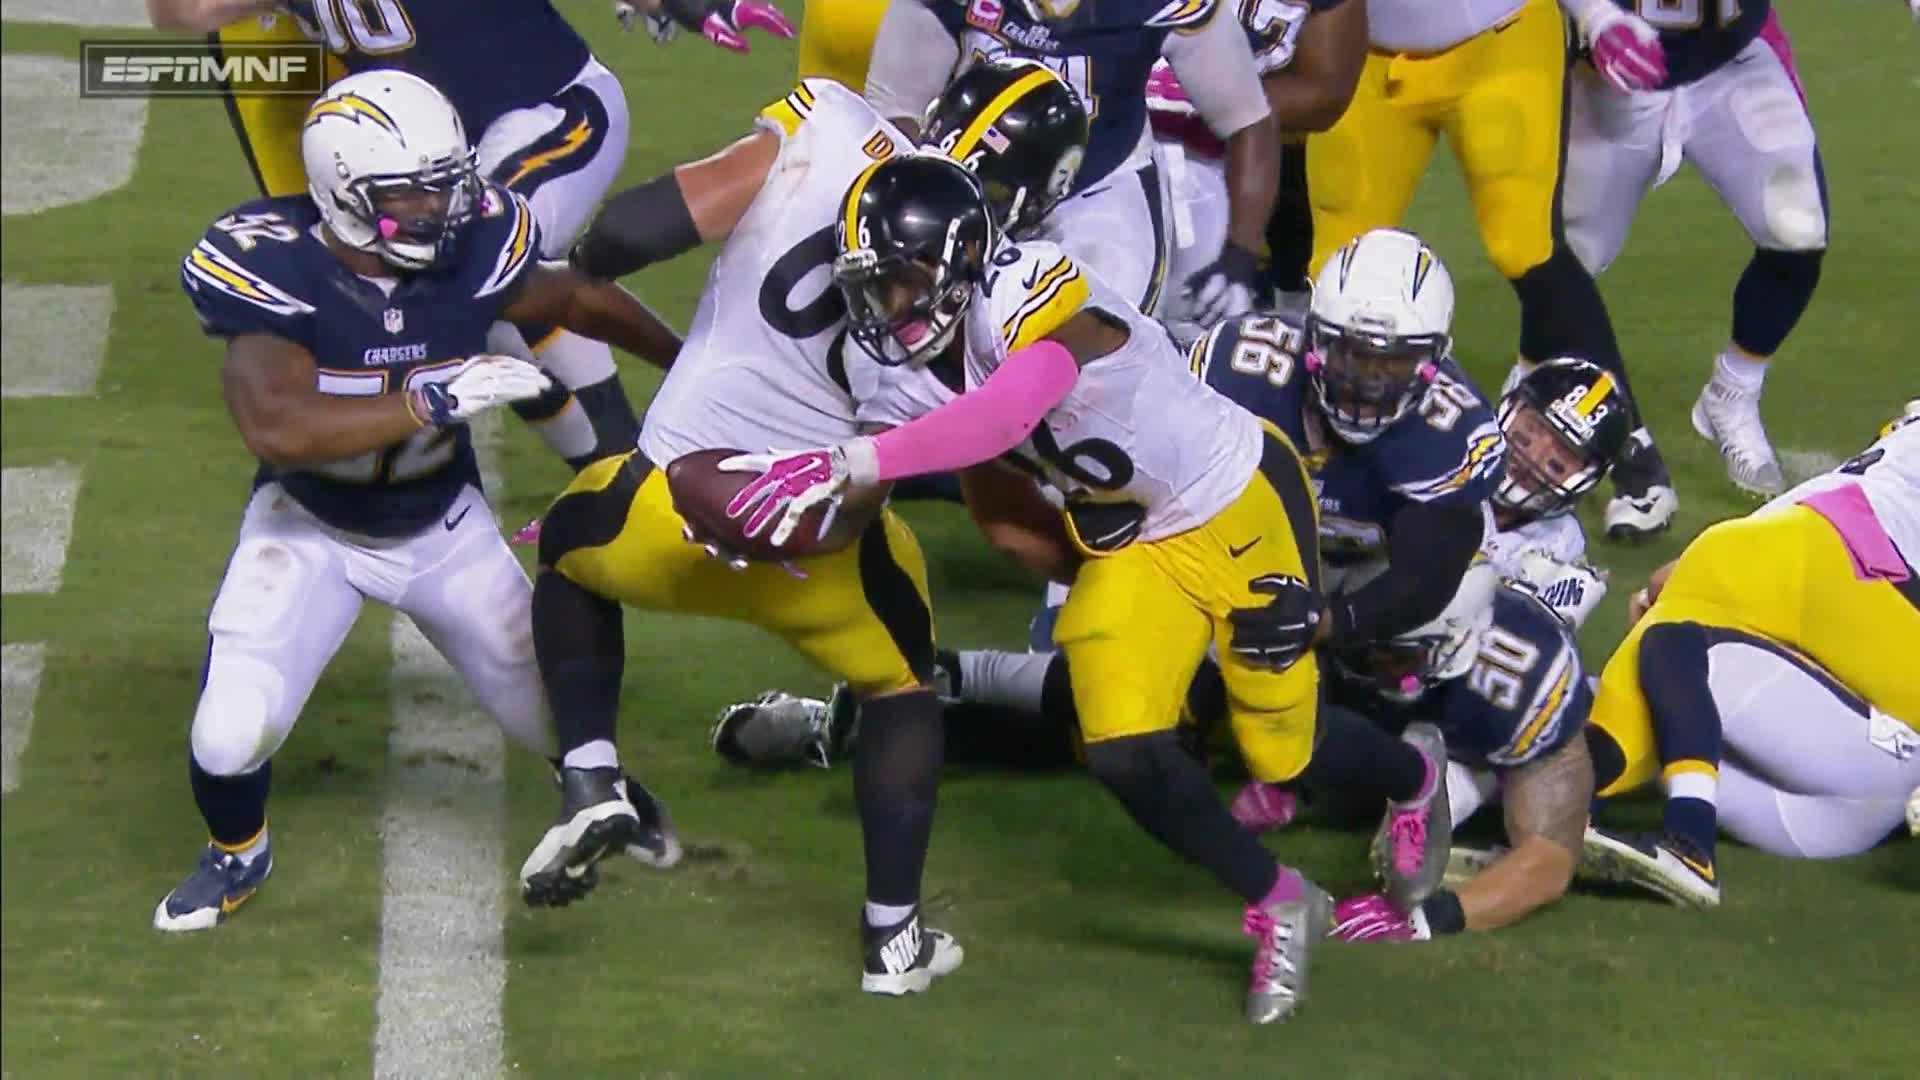 Le'Veon Bell dived into the endzone for a touchdown with just five seconds  remaining